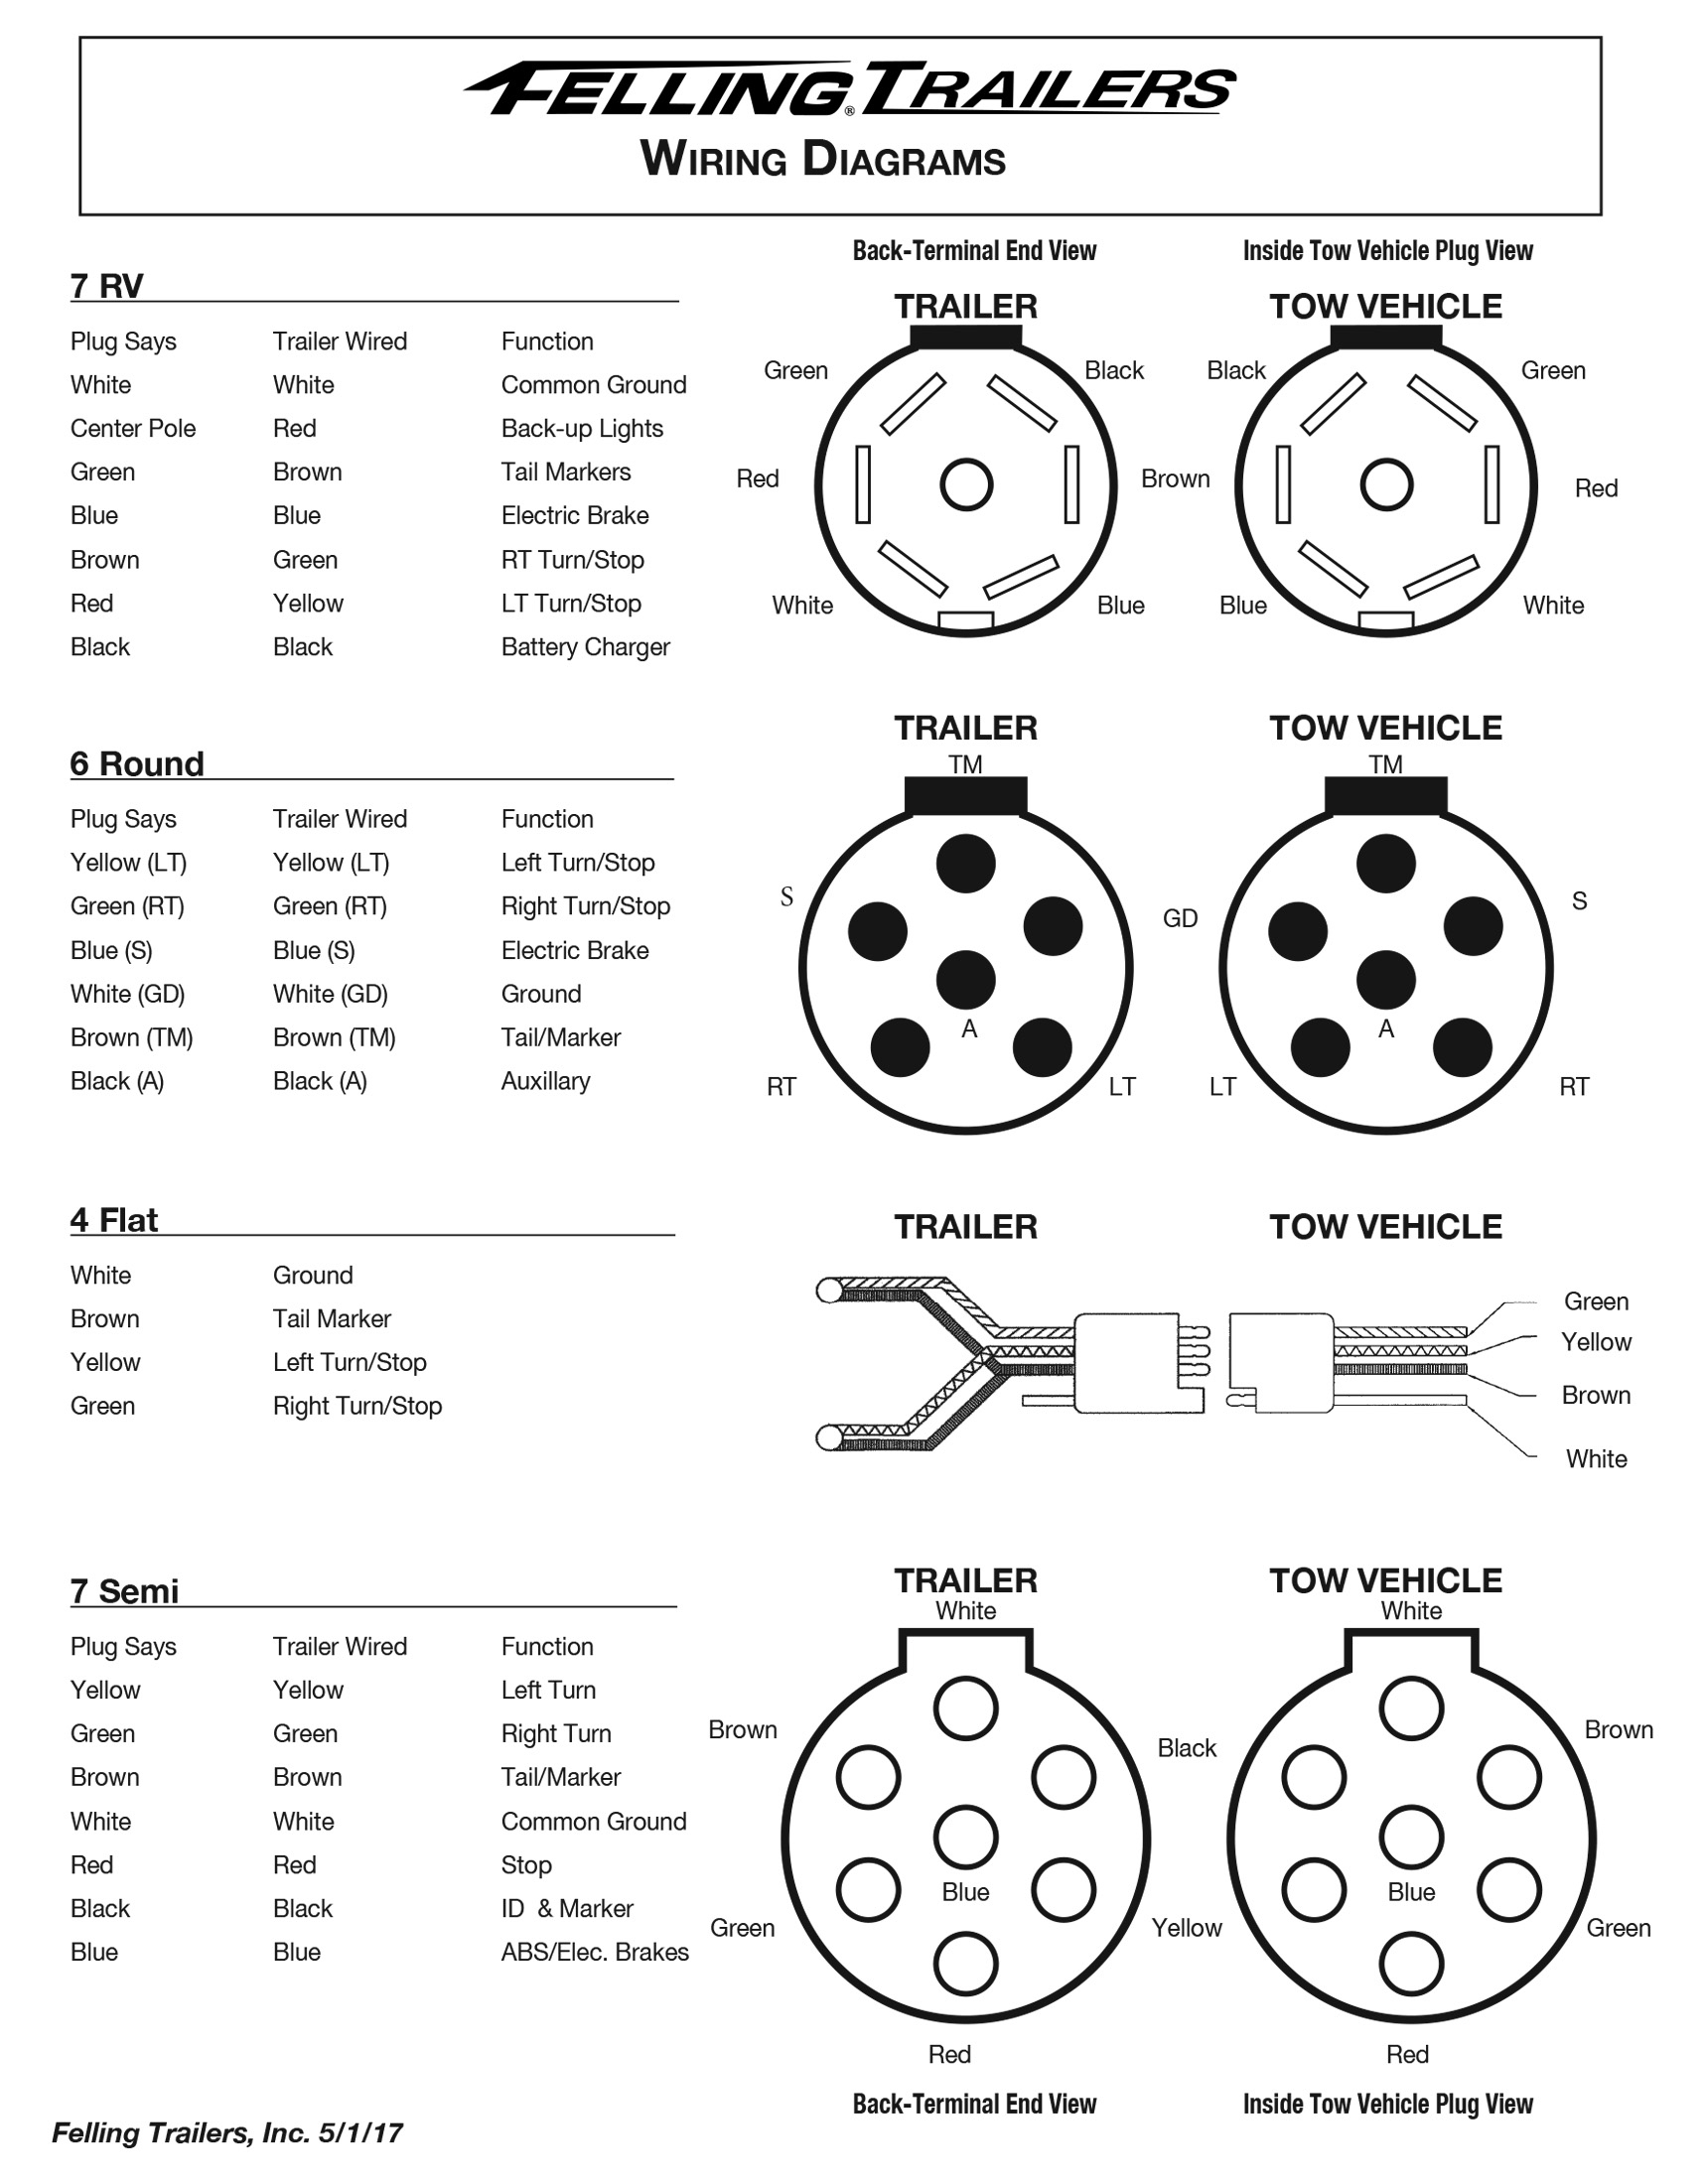 Service- Felling Trailers Wiring Diagrams, Wheel Toque - Trailer Brakes Wiring Diagram